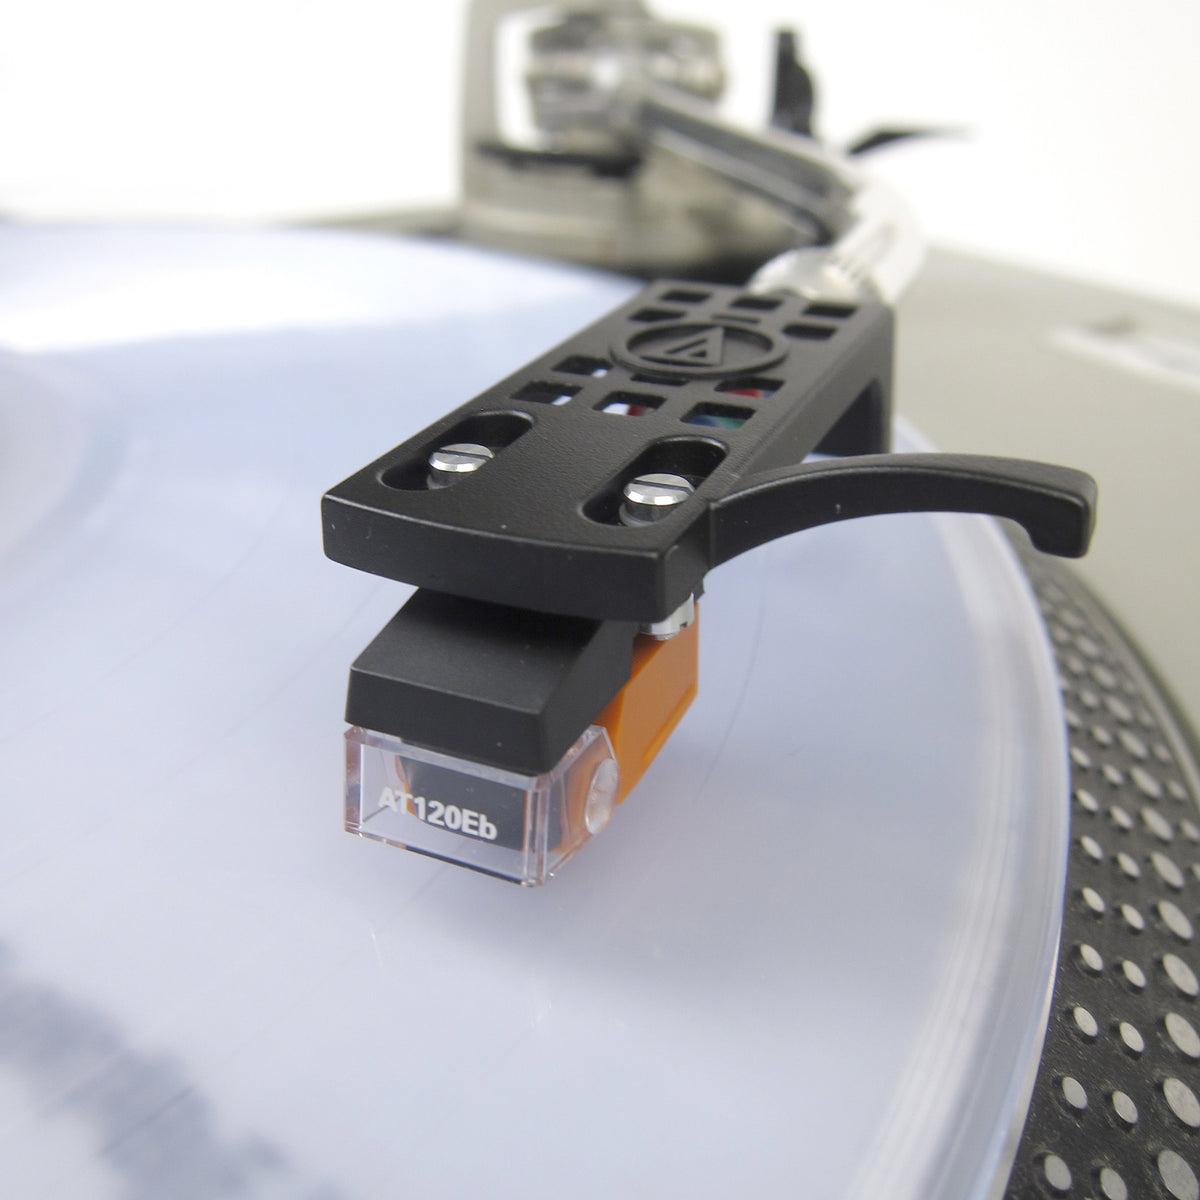 Audio-Technica: AT120EB Cartridge Mounted on AT-HS10BK Headshell